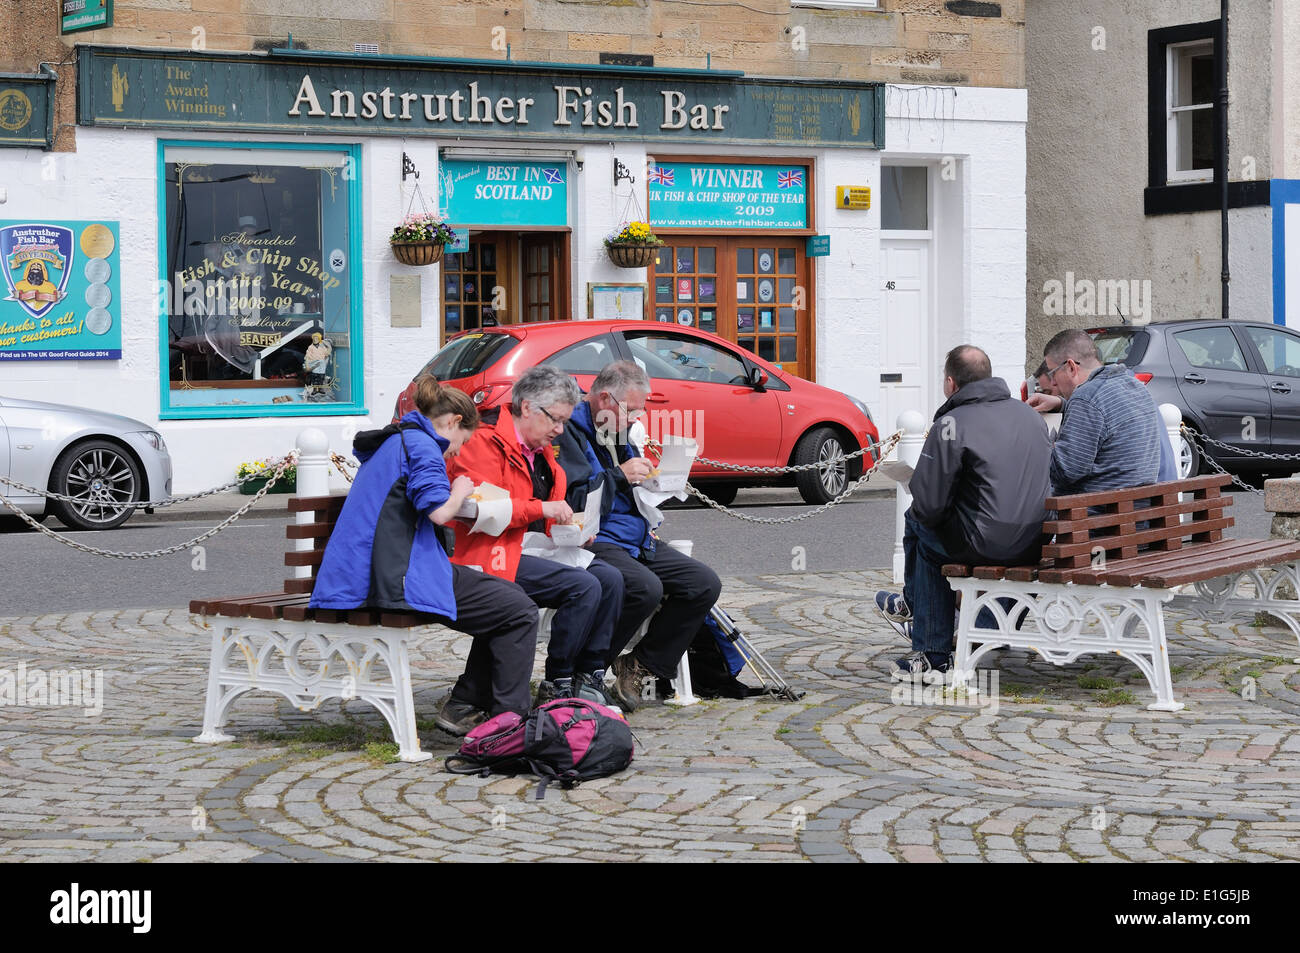 People eating fish and chips bought from the award winning Anstruther fish bar - Stock Image